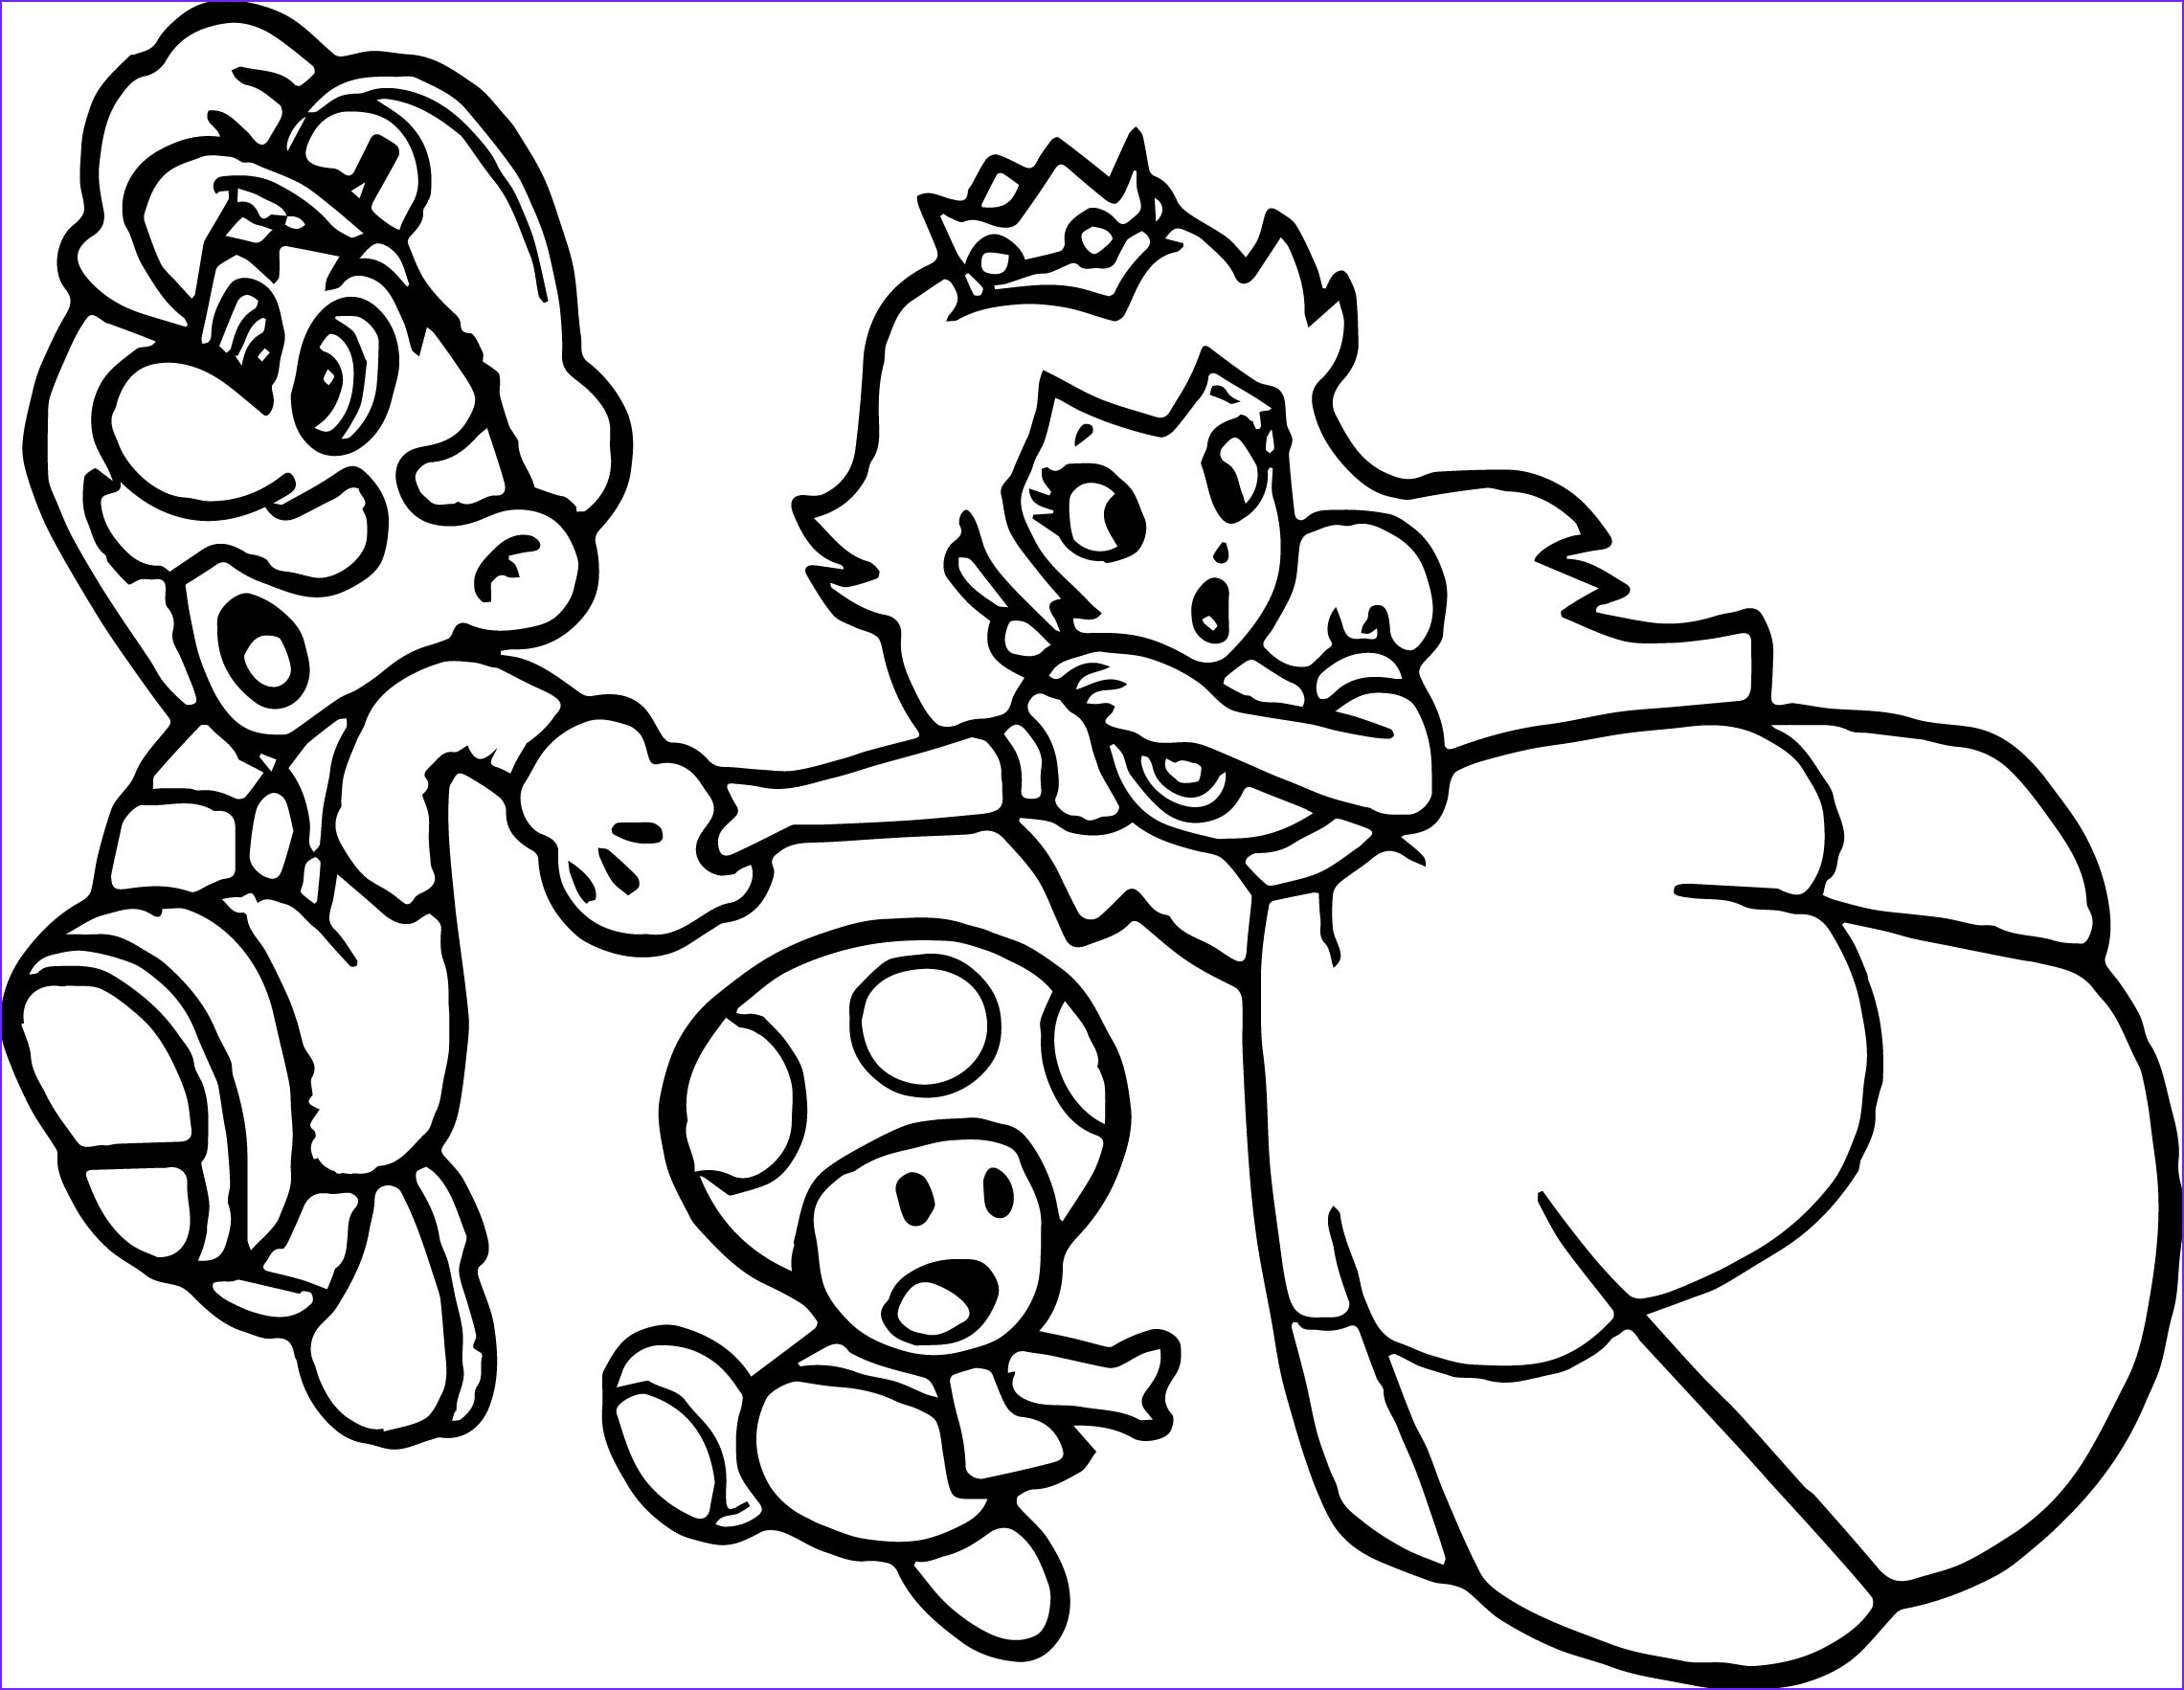 Mario Coloring Pages Best Of Stock Mario Odyssey Coloring Pages Printable